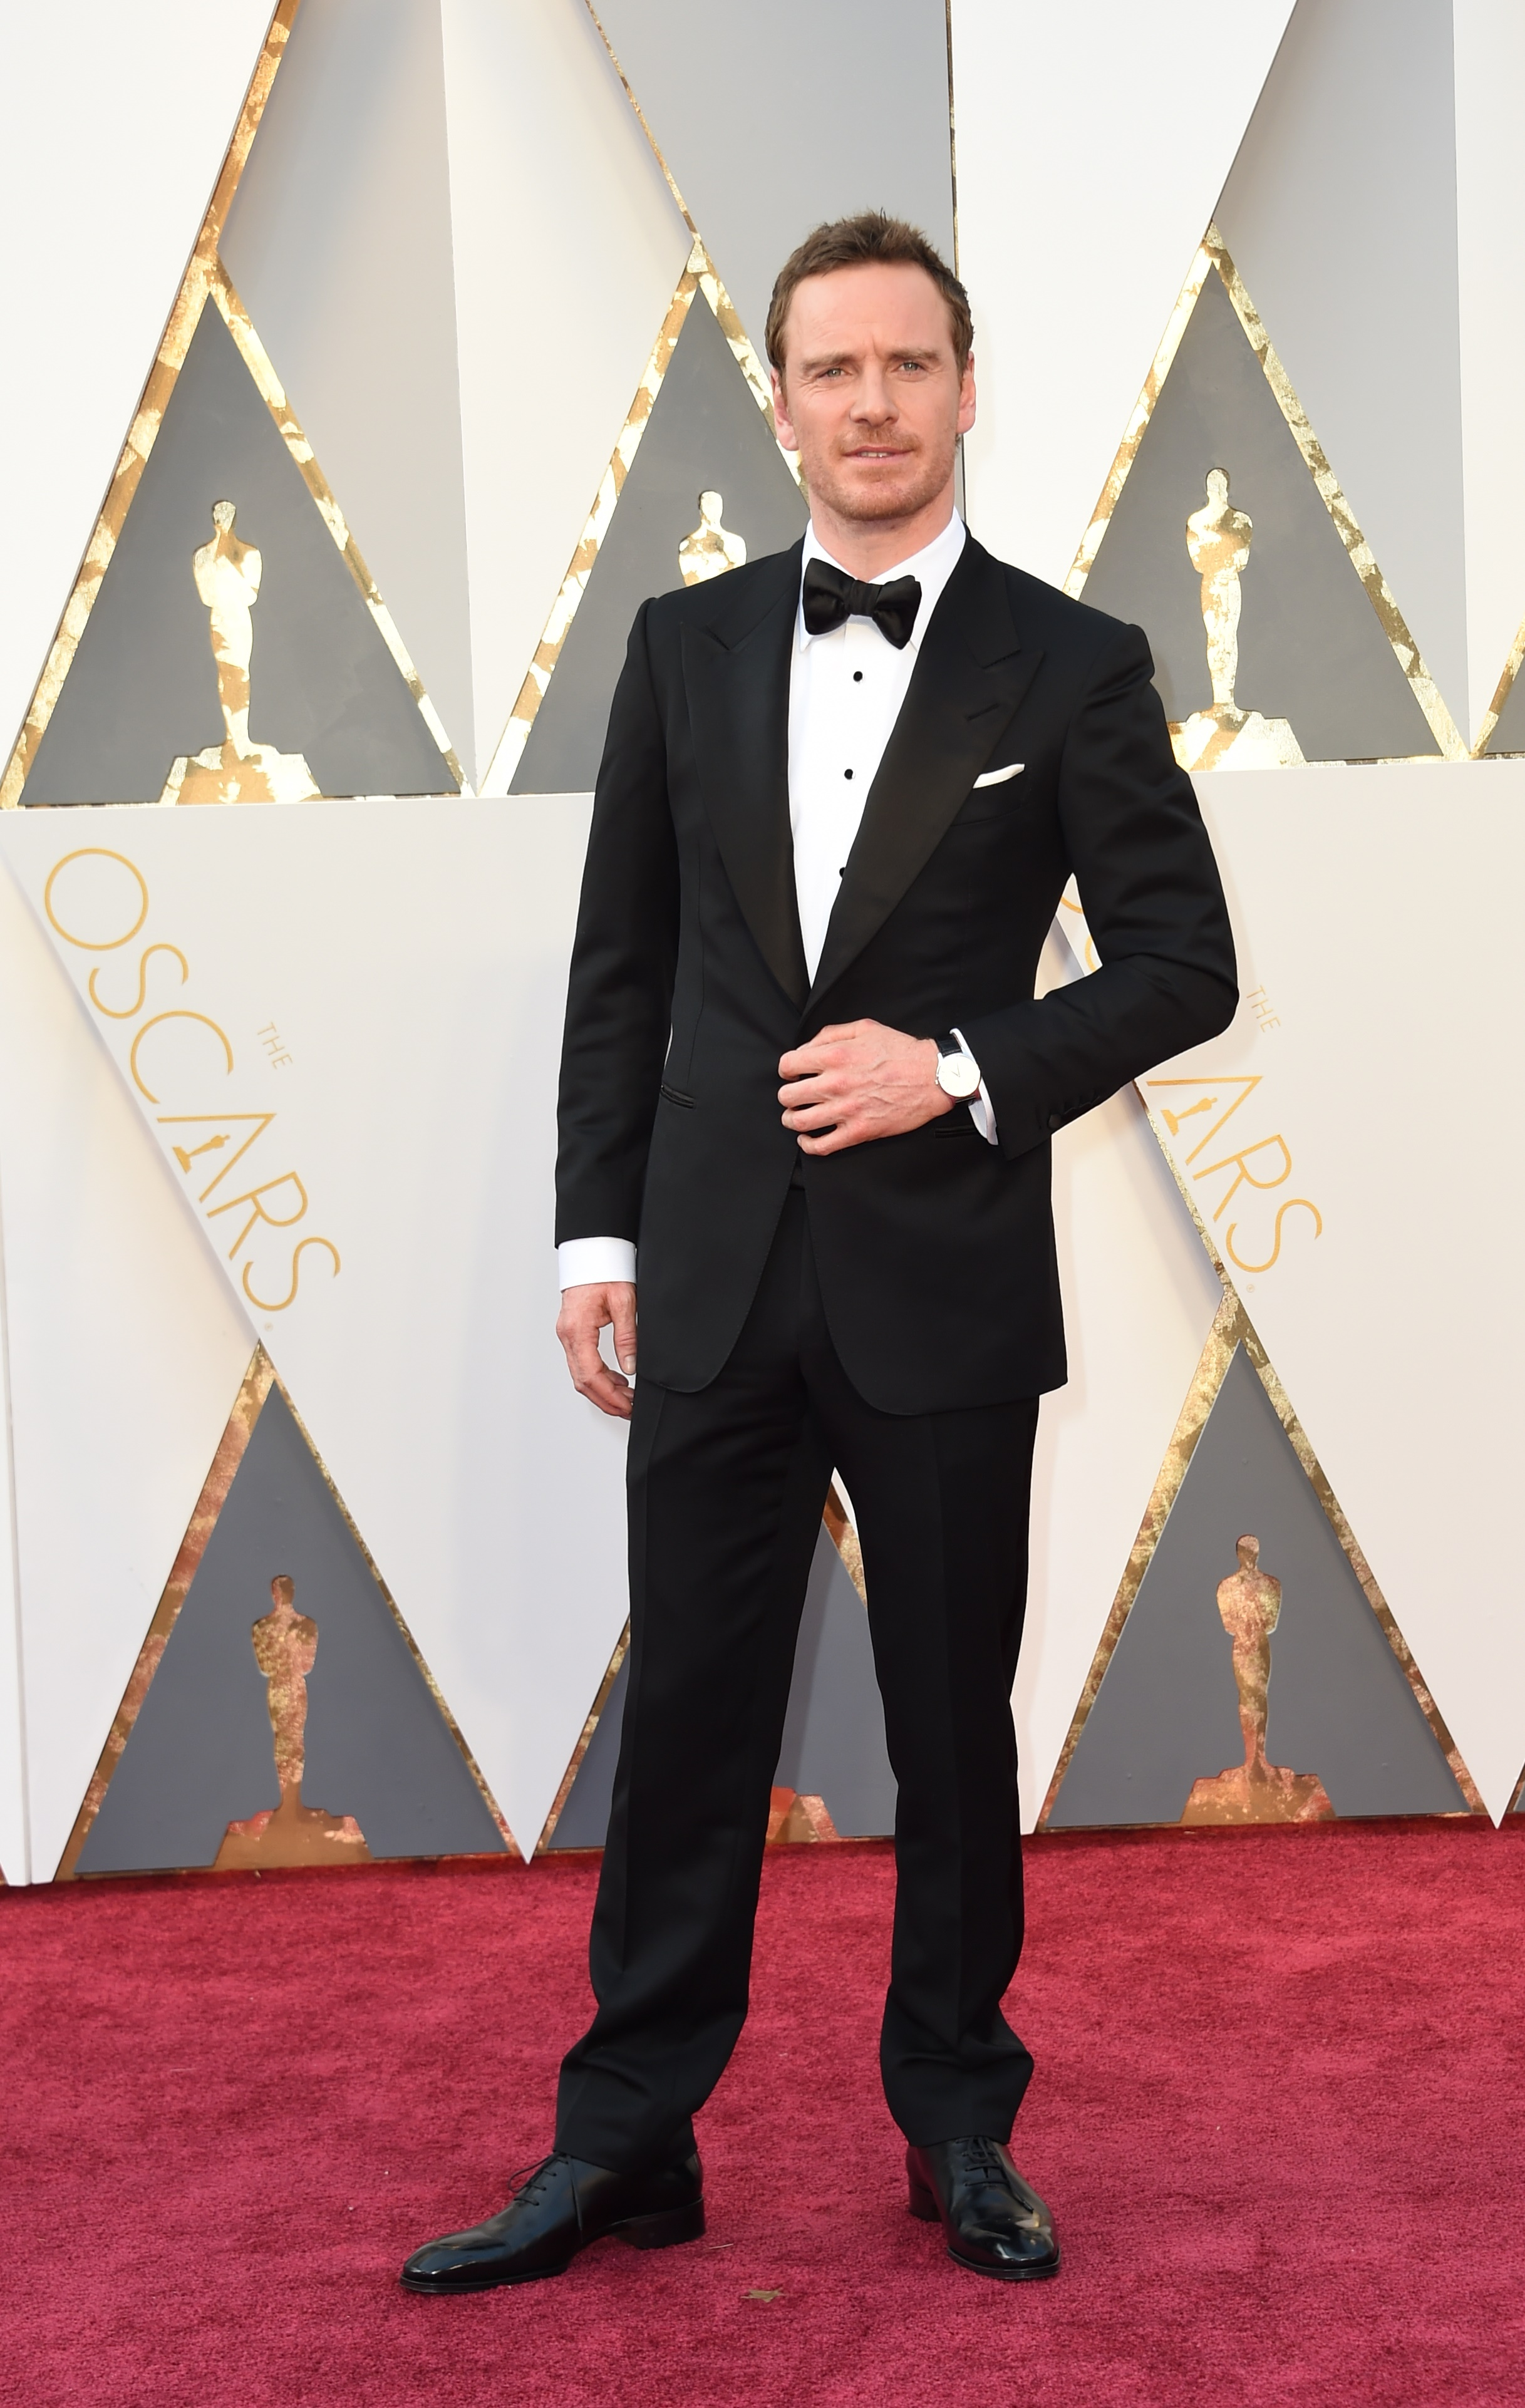 Michael Fassbender attends the 88th Annual Academy Awards on Feb. 28, 2016 in Hollywood, Calif.